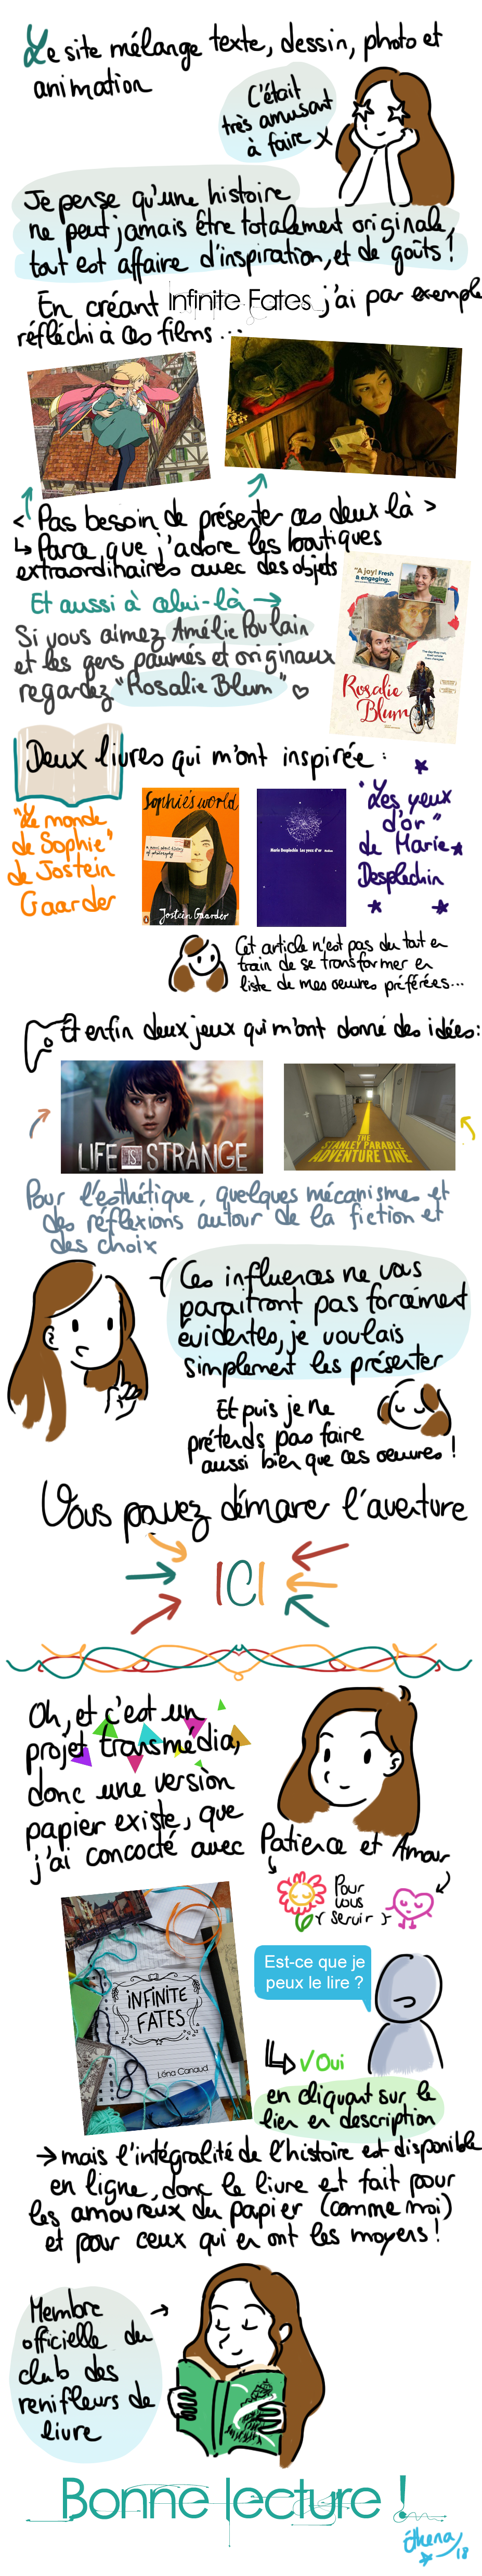 Présentation de Infinite Fates et de mes sources d'inspiration (Amélie Poulain, Rosalie Bloom, Les yeux d'or de Marie Desplechin, Le monde de Sophie, Life is Strange, the Stanley Parable)